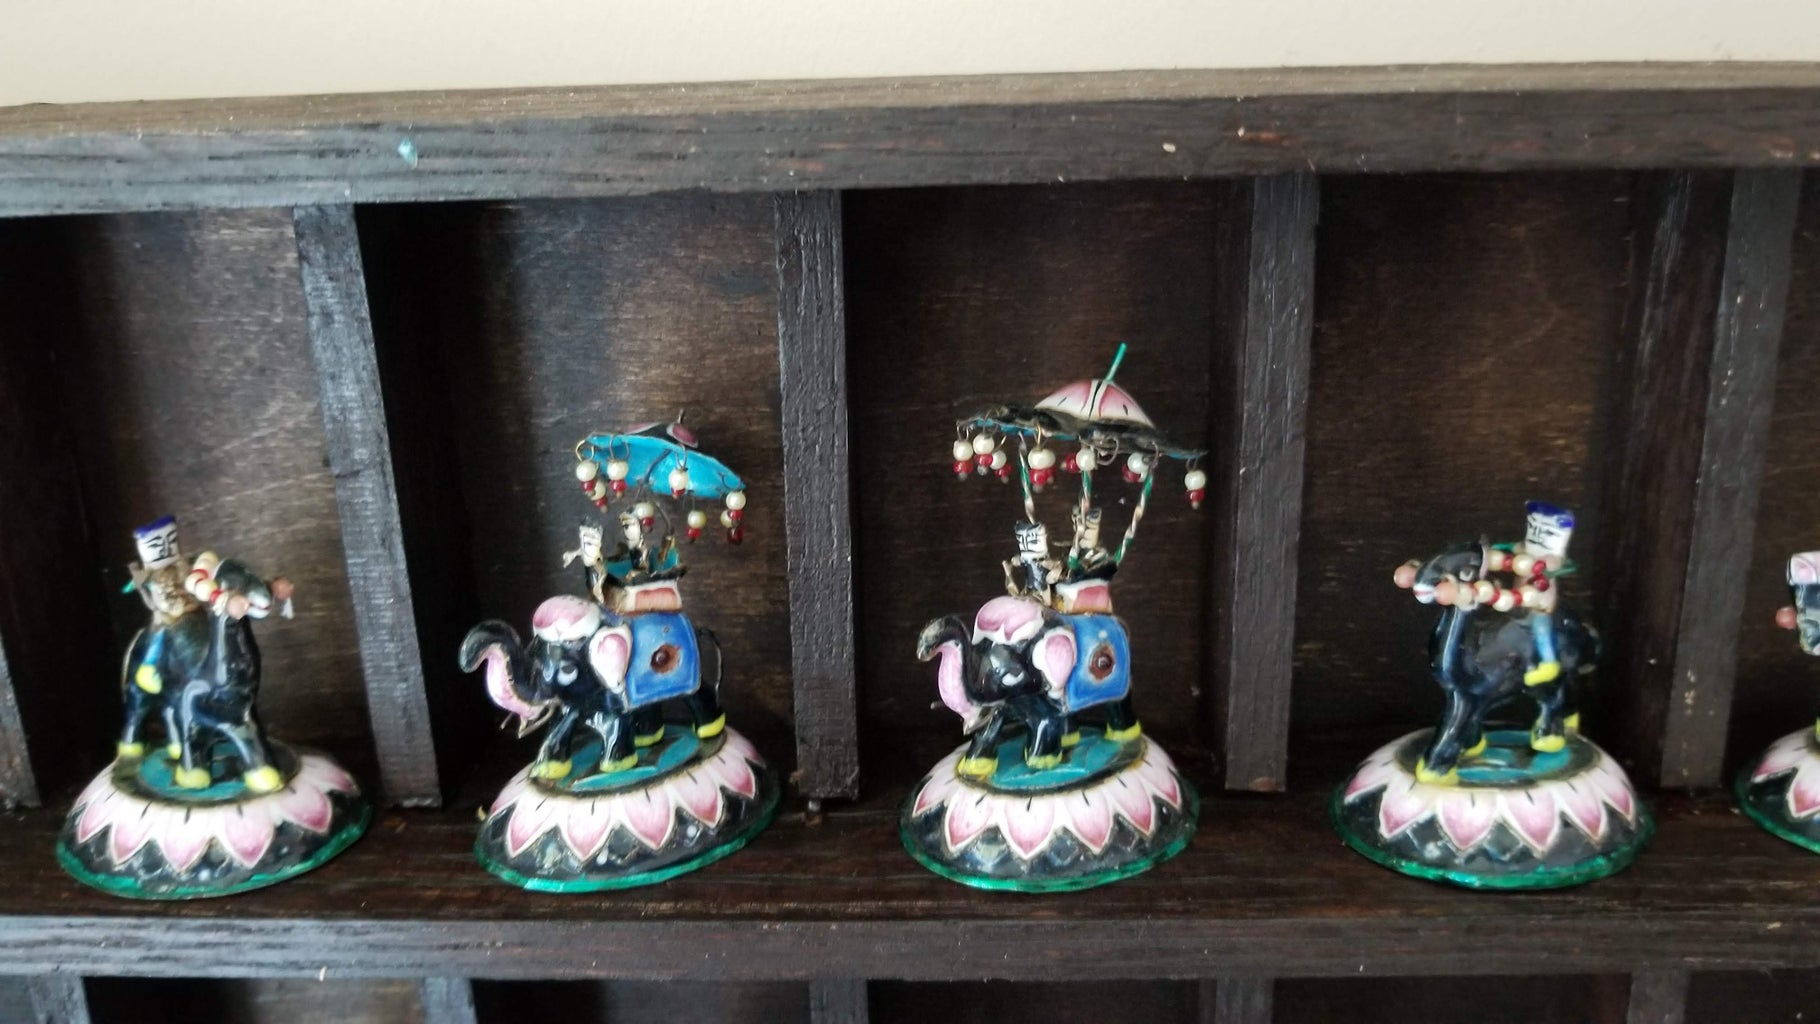 Displaying the Chess Pieces